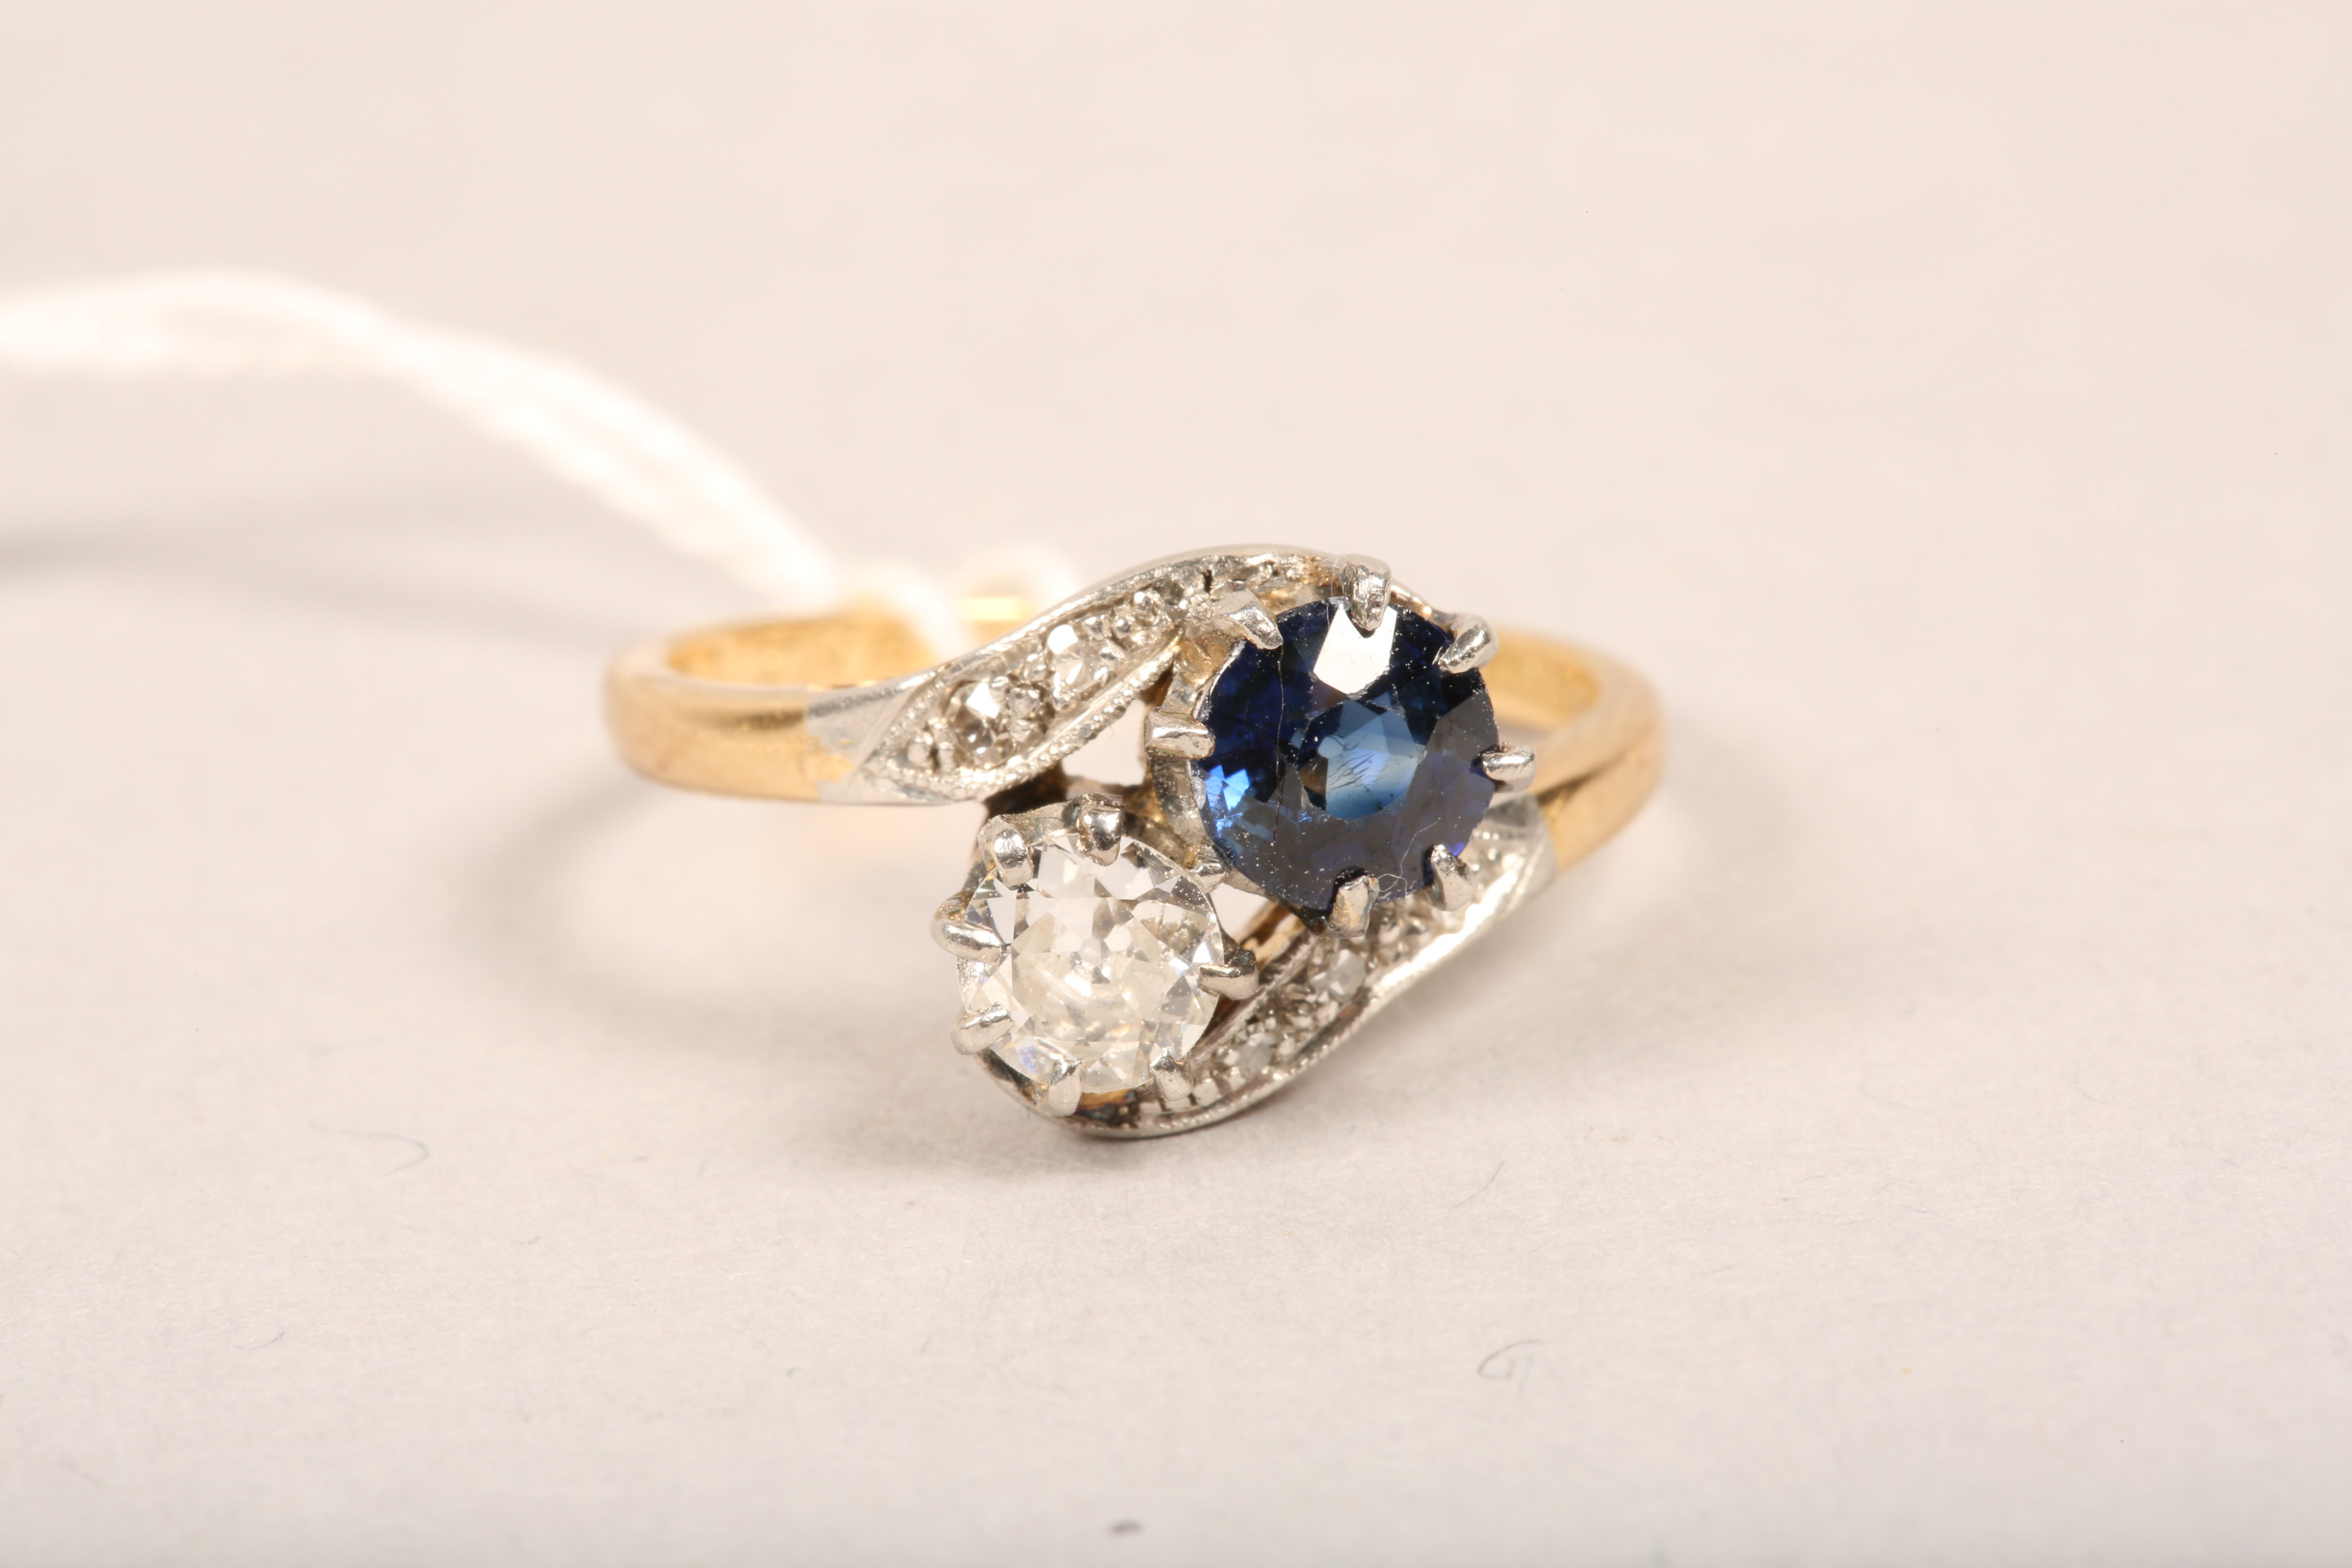 Ladies 18 carat gold diamond and sapphire ring, 0.33 diamond and 0.5 sapphire in twist setting, - Image 7 of 8